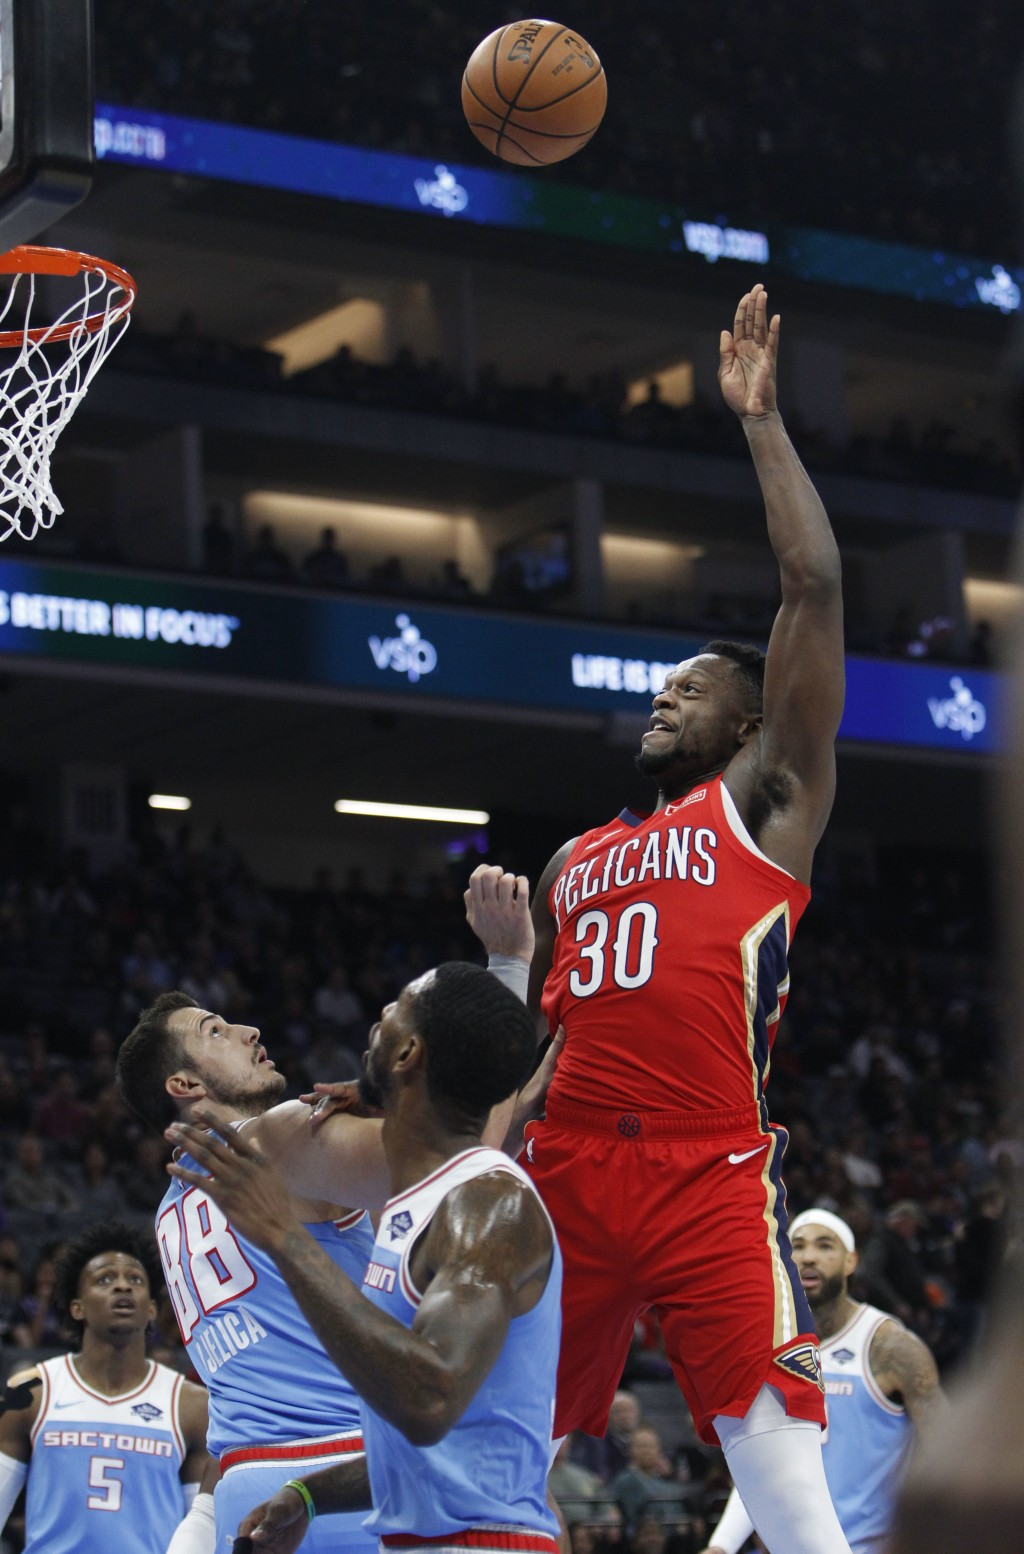 New Orleans Pelicans forward Julius Randle (30) shoots over Sacramento Kings forward Nemanja Bjelica (88) during the first half of an NBA basketball g...